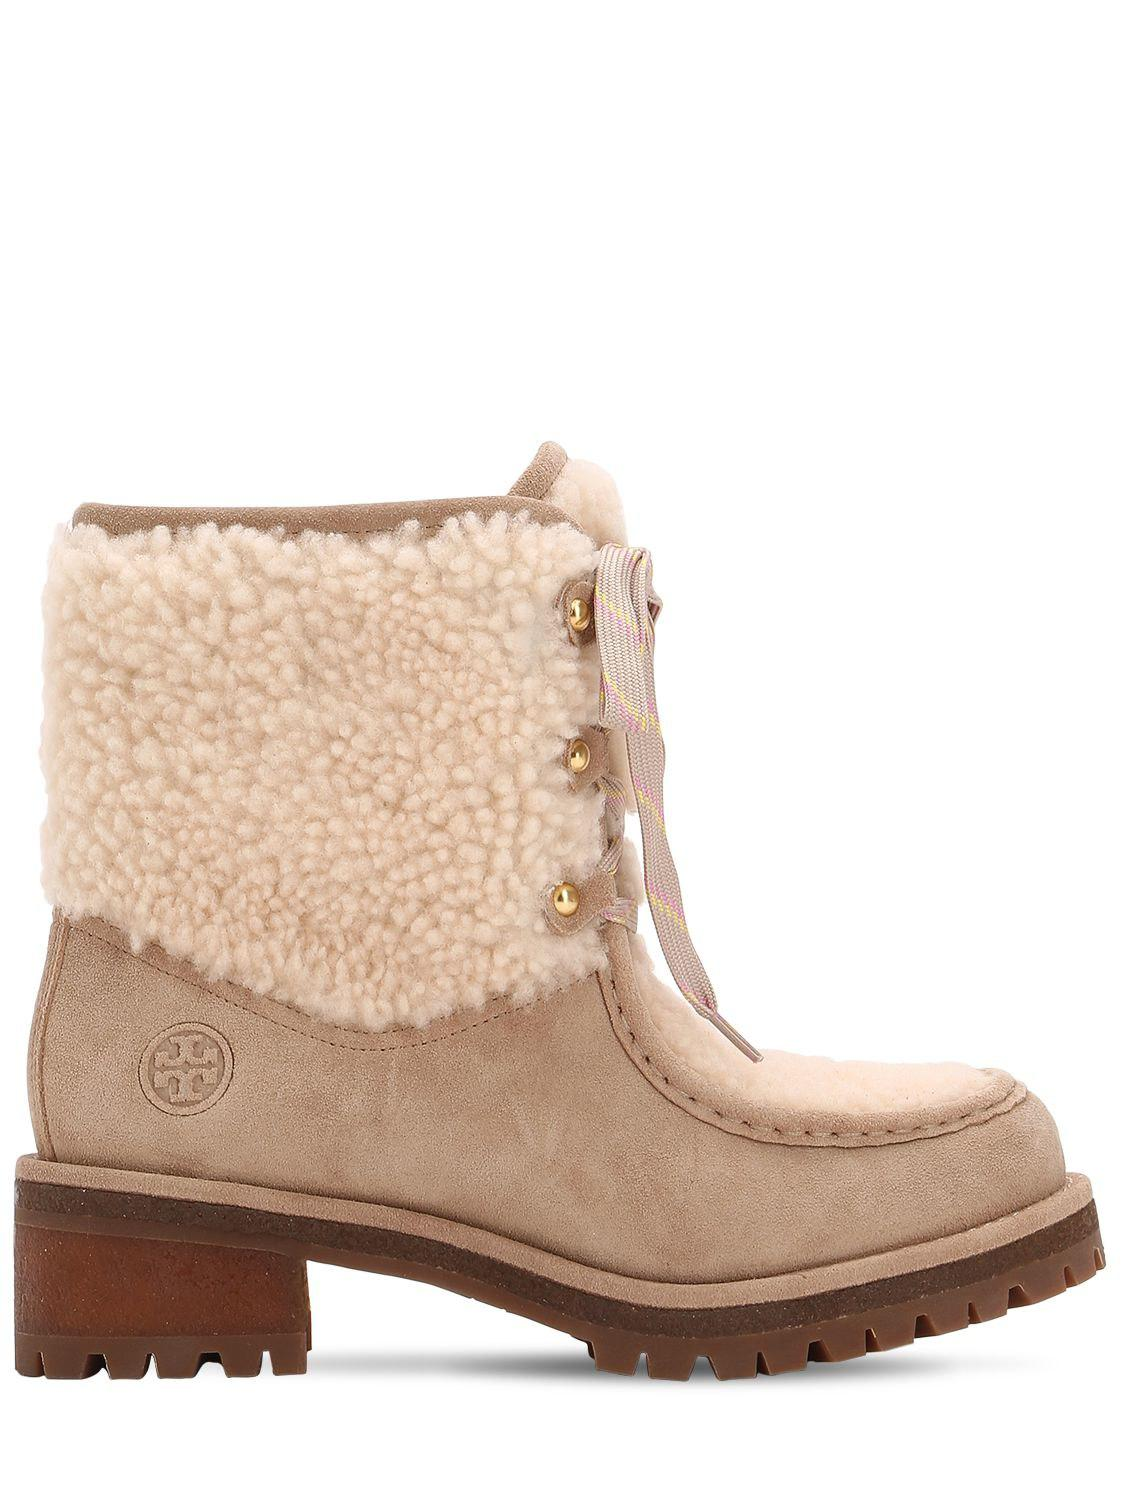 23b4e8daf Tory Burch 60mm Meadow Suede   Shearling Boots in Natural - Lyst